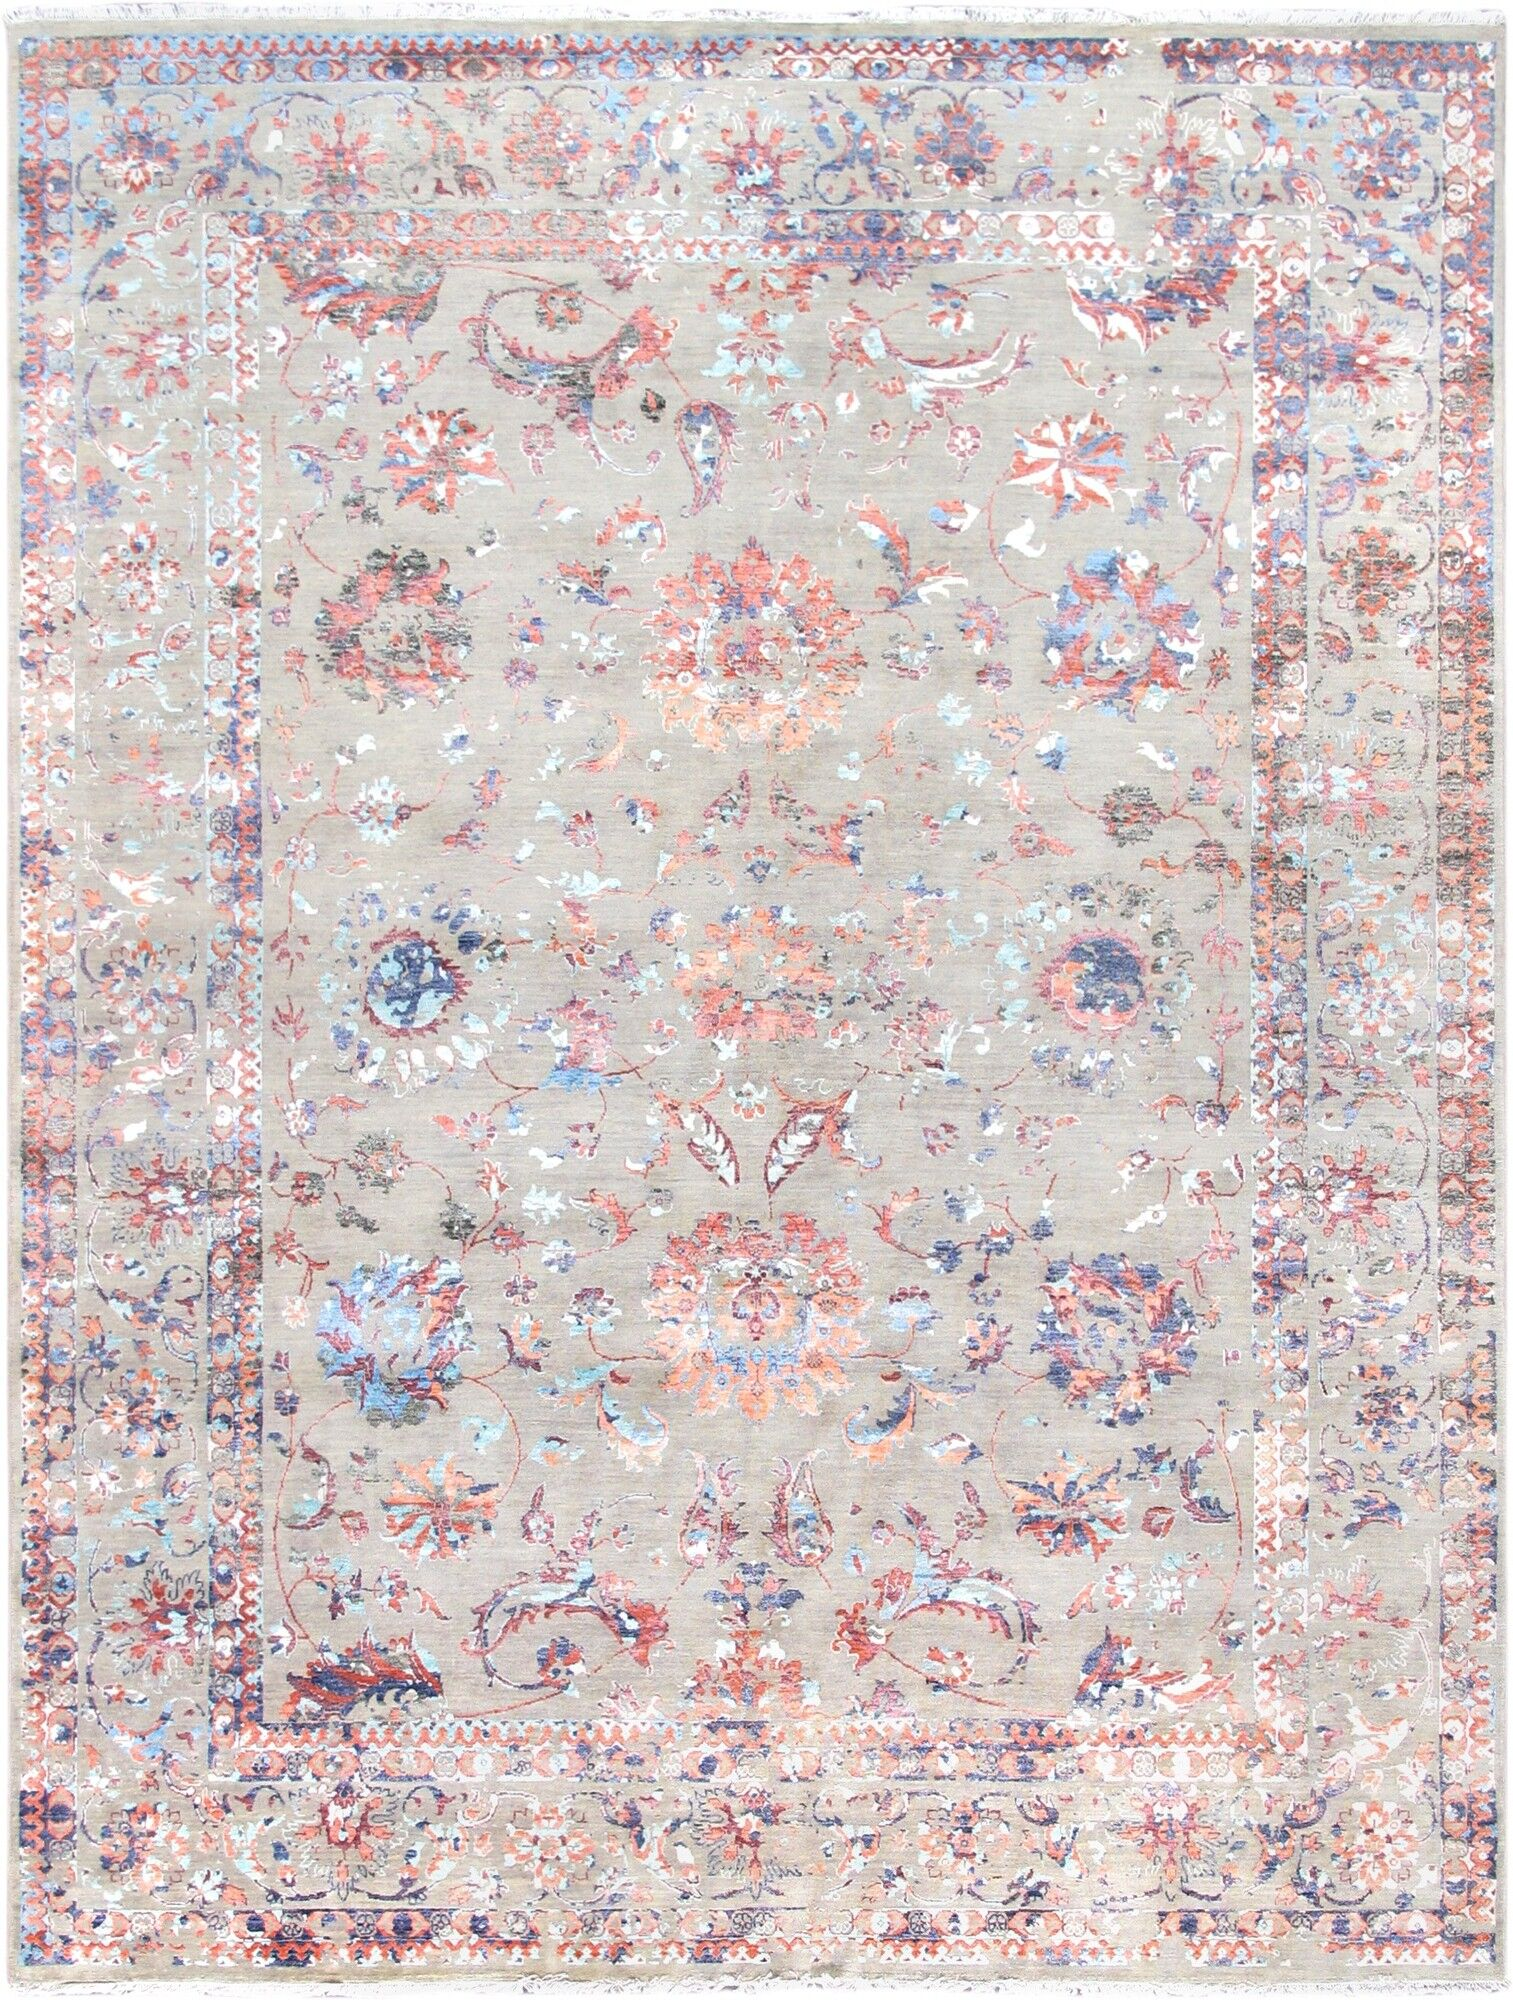 Transitional Hand-Knotted Wool/Silk Gray/Pink Area Rug